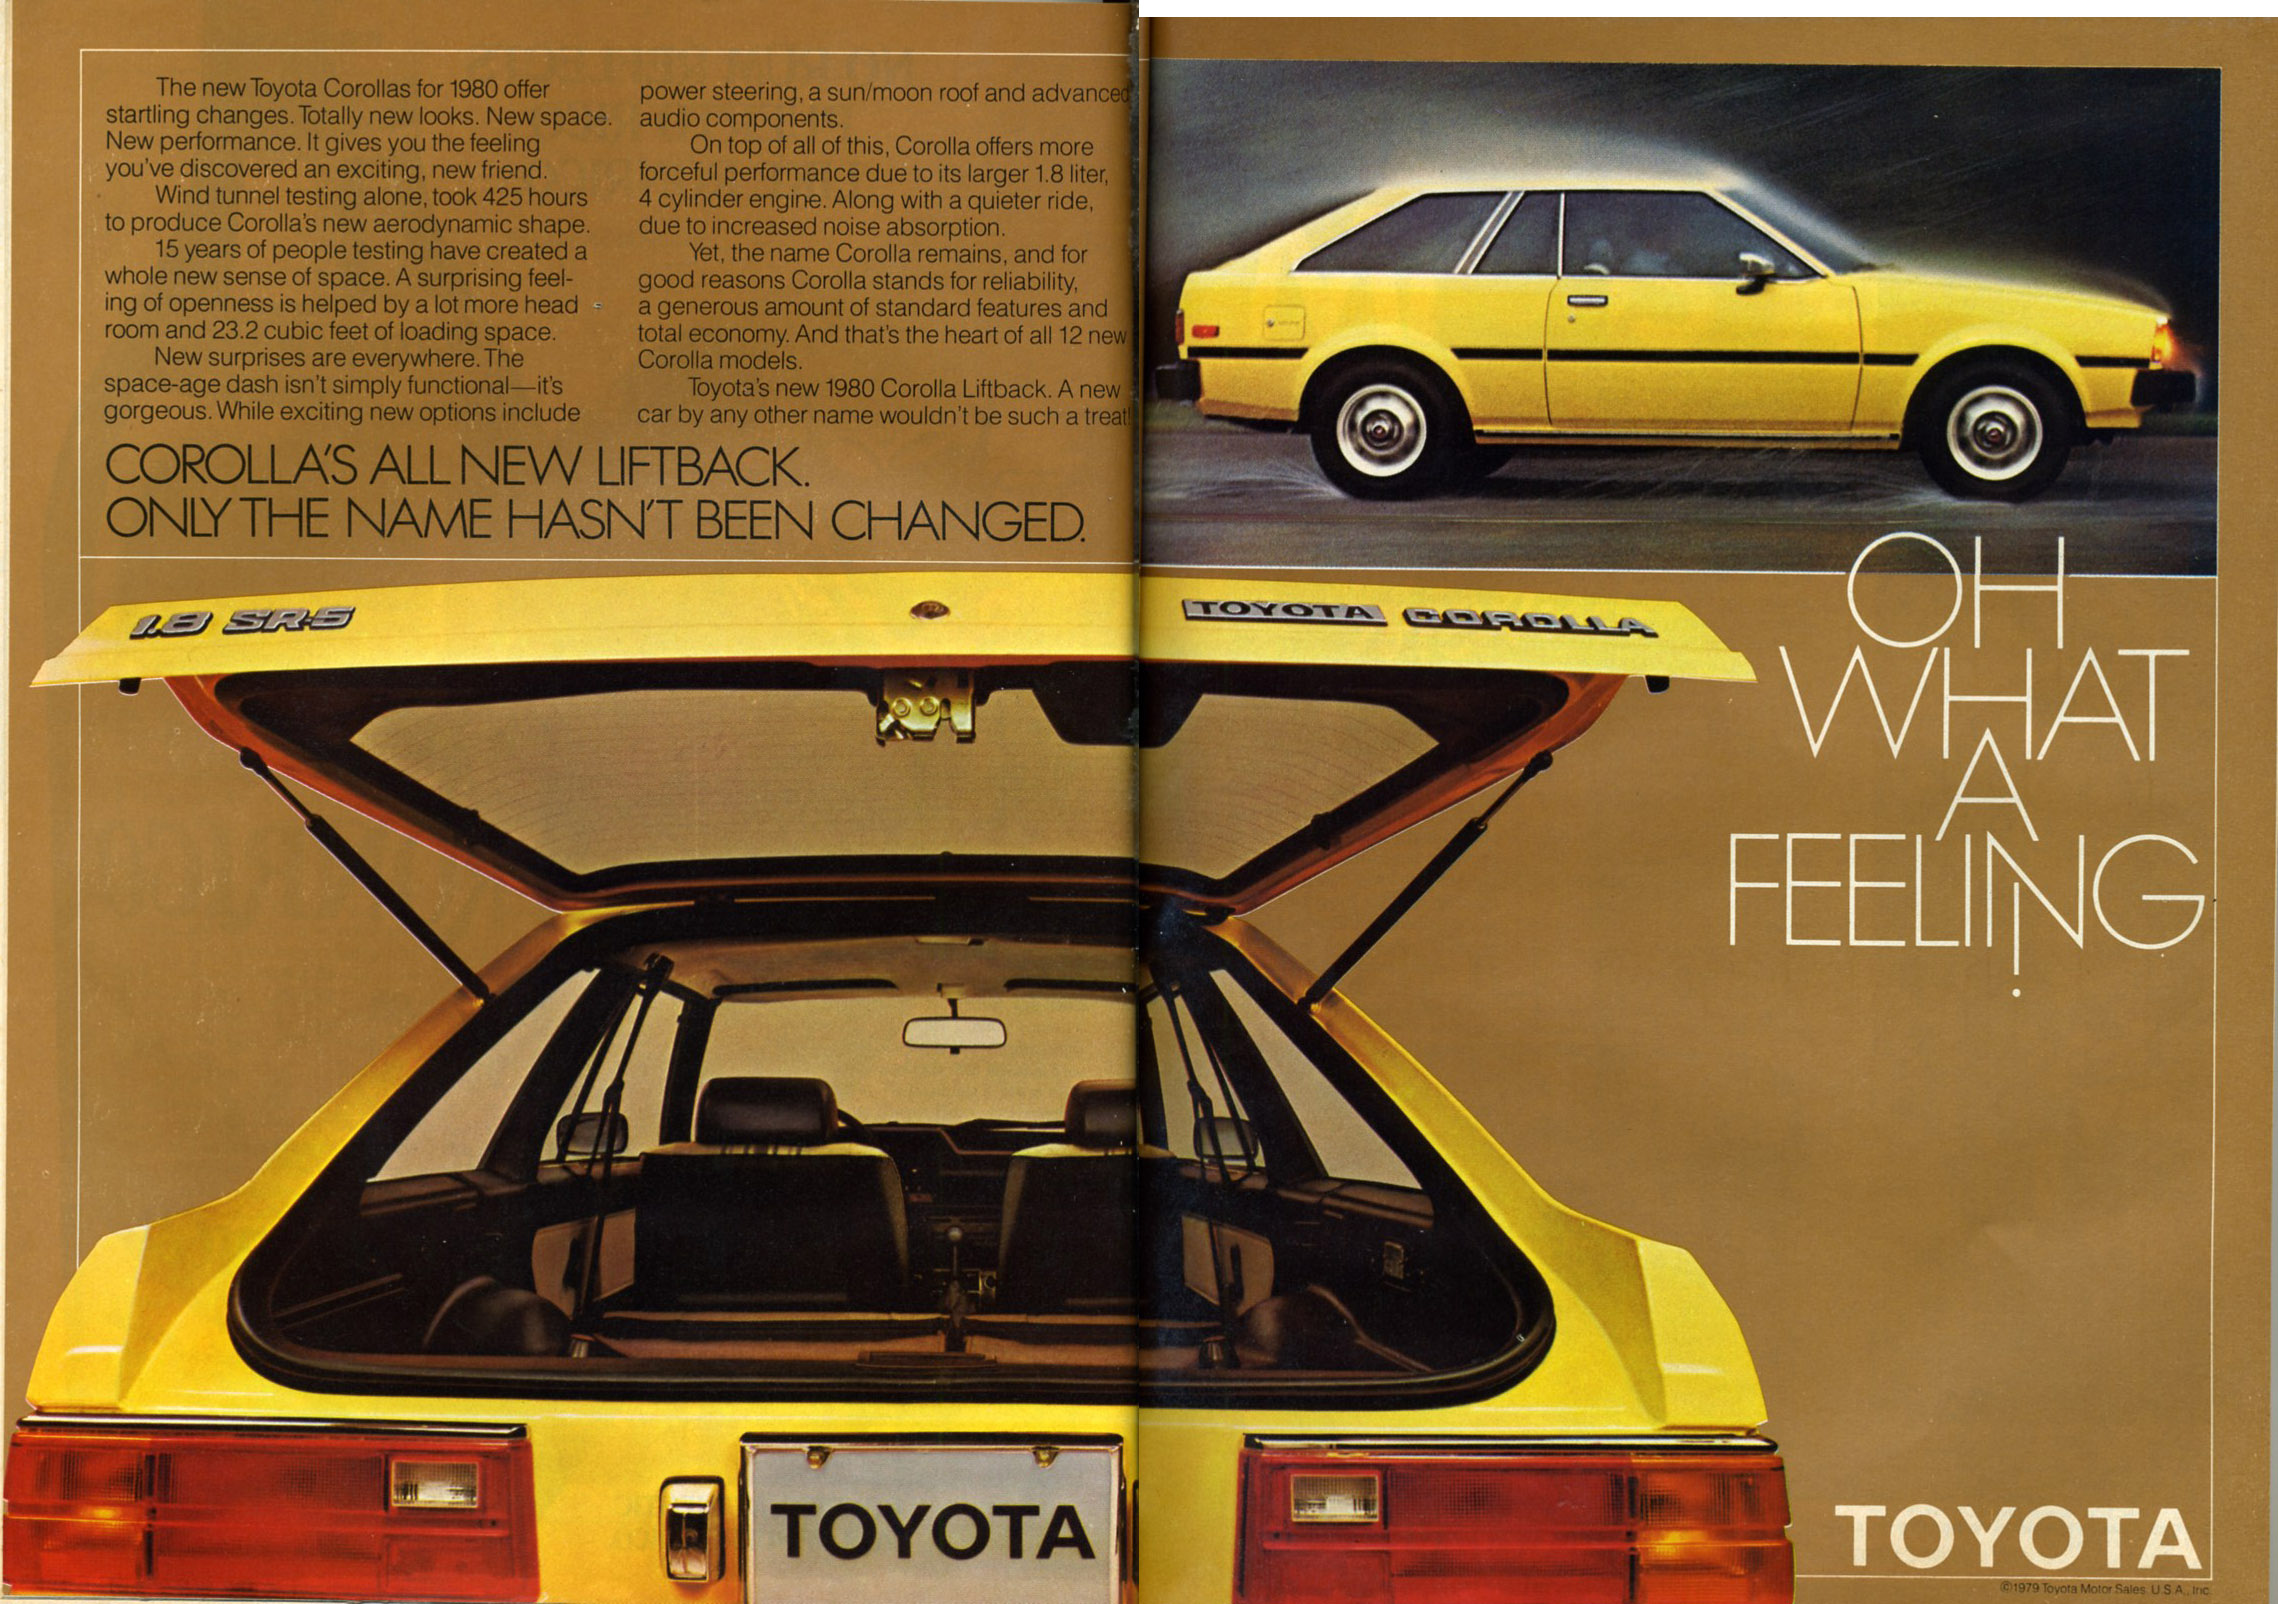 Toyota Corolla Liftback 1979 | Flickr - Photo Sharing!